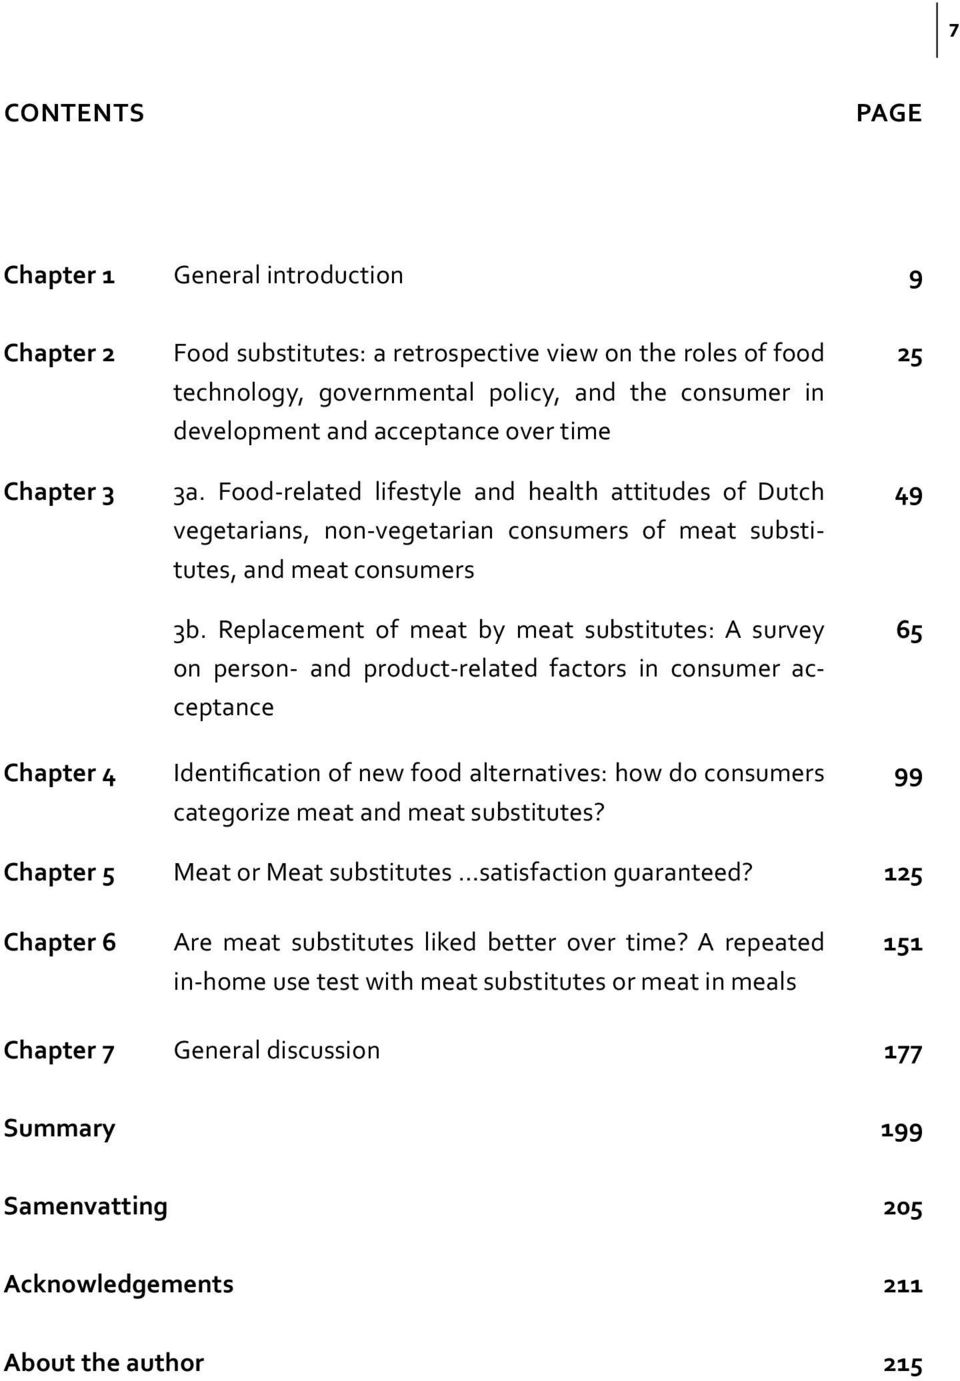 Replacement of meat by meat substitutes: A survey on person- and product-related factors in consumer acceptance Identification of new food alternatives: how do consumers categorize meat and meat